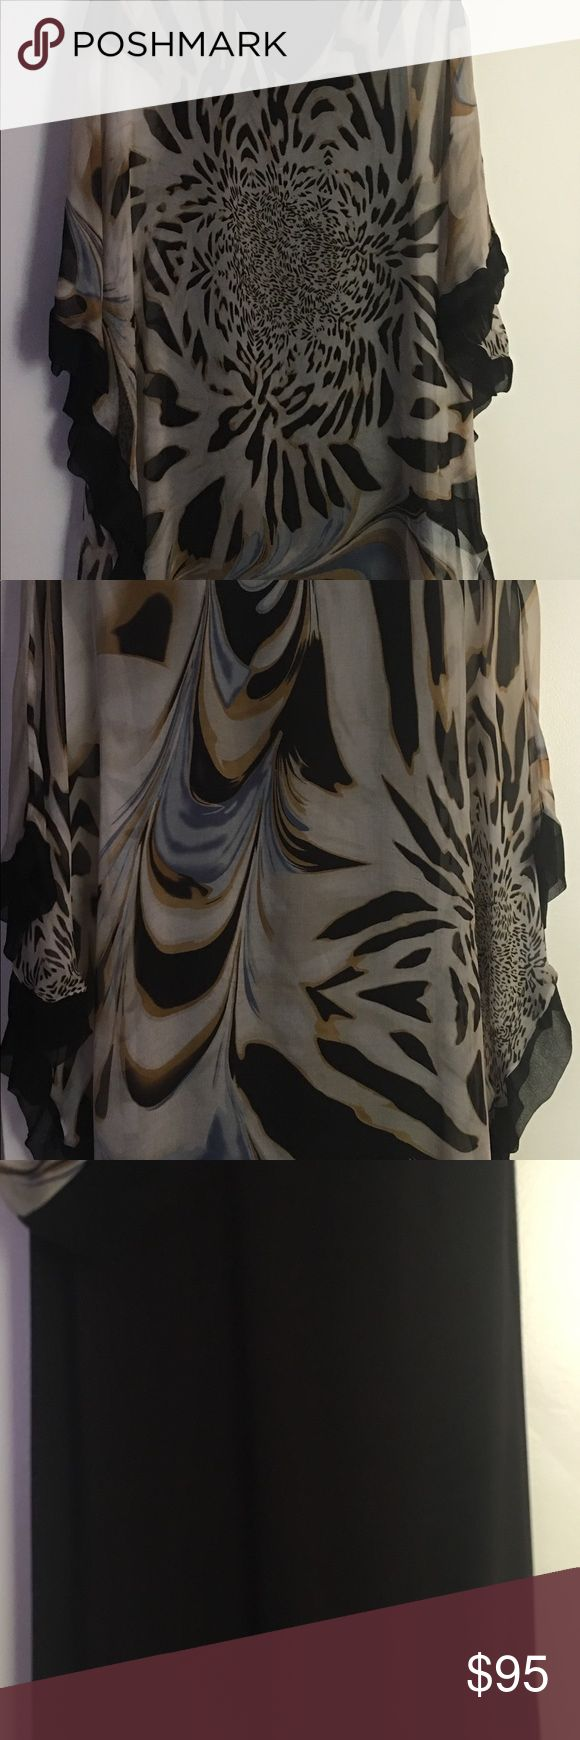 Silk dress 100% silk dress it has a tight spandex /spanx slip attached to the dress.  The size is XS/S . Super flattering, gives good cleavage and shapes the body with 100% flowing  silk animal print. Bought at a upscale Scottsdale boutique. Analili Dresses Mini